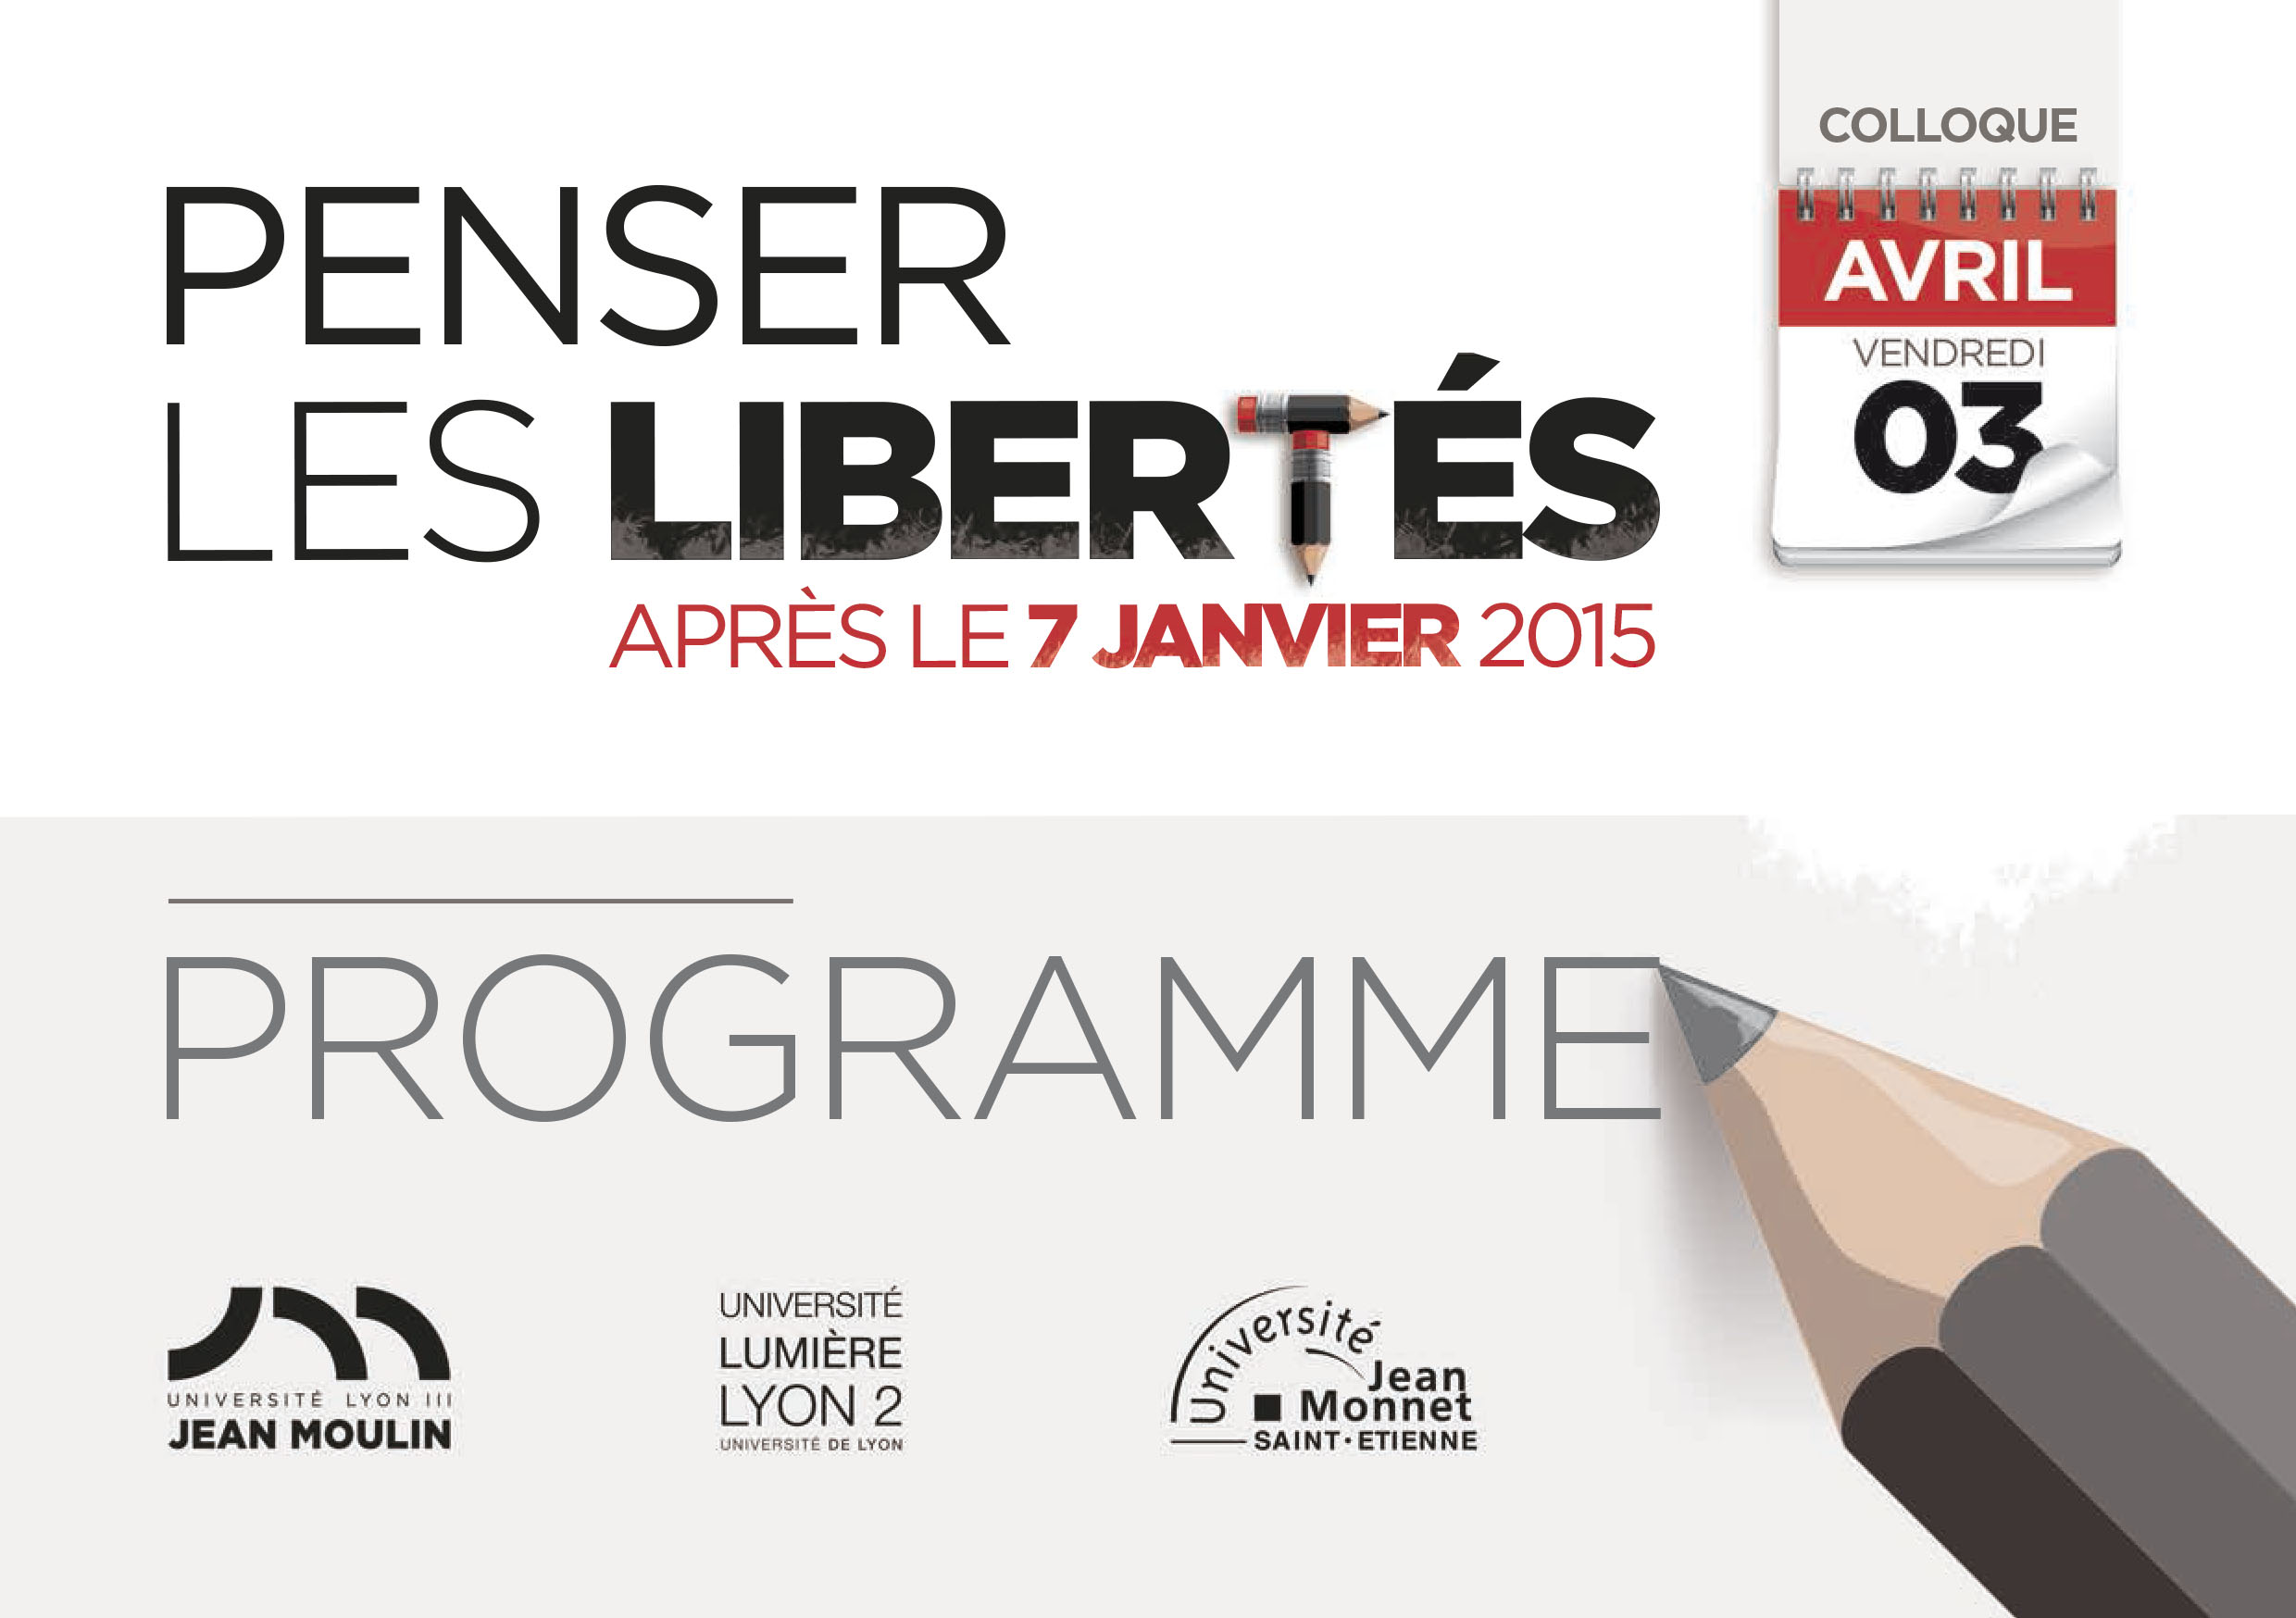 programme colloque 3 avril